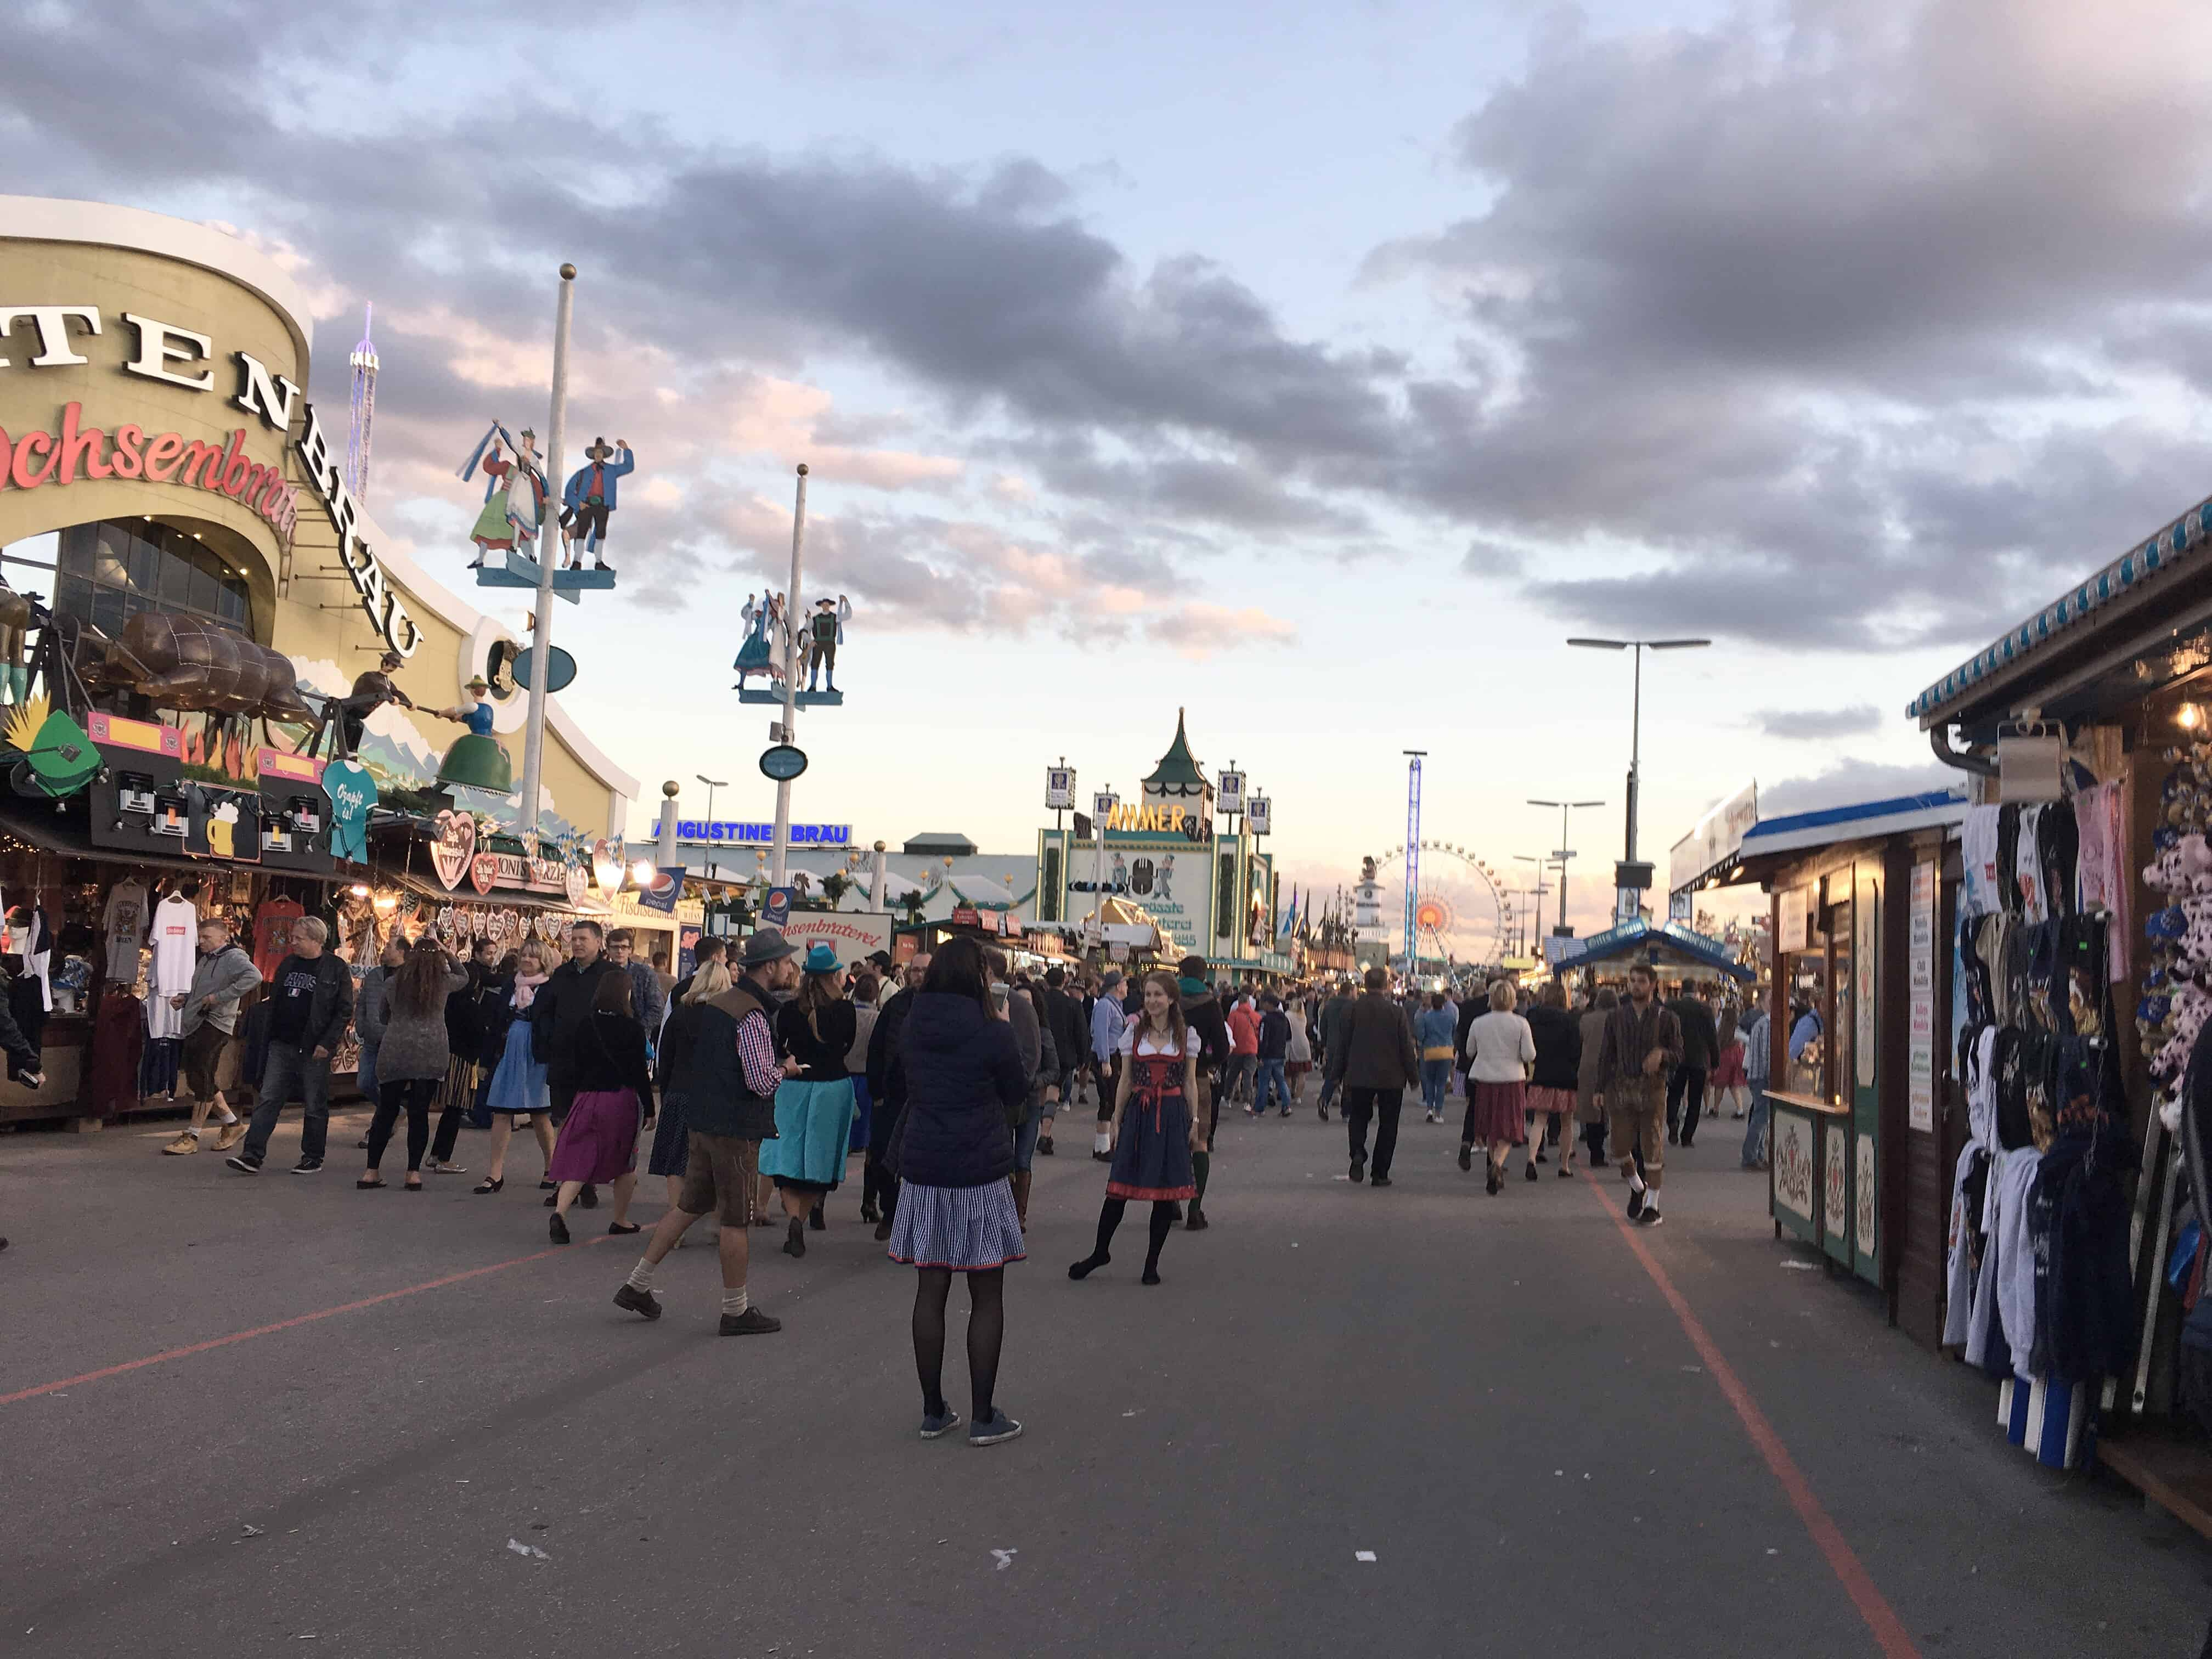 Oktoberfest and carnival rides in the evening in Munich, Germany